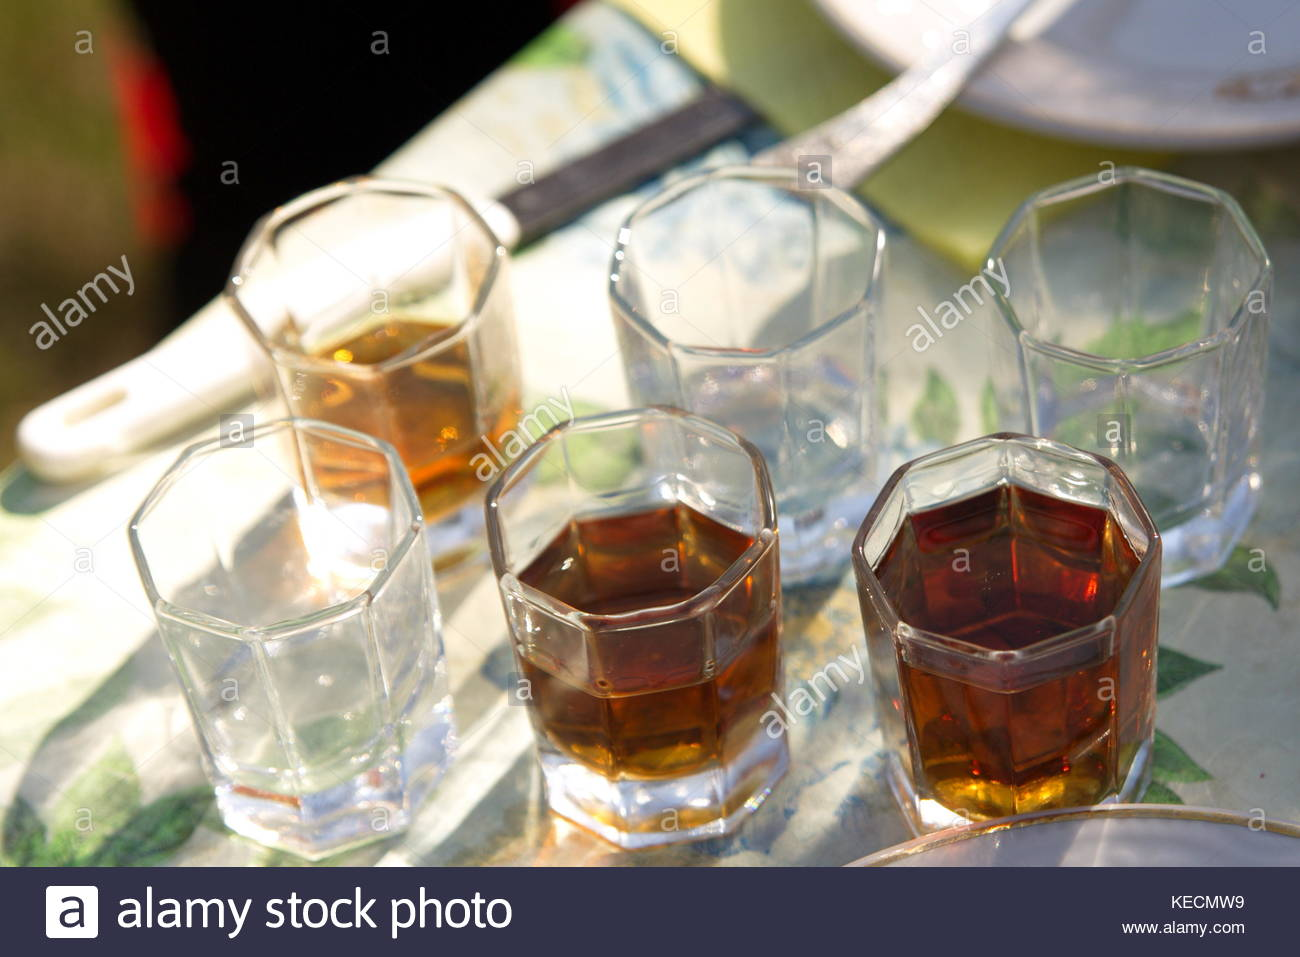 Empty and full glasses of wine on the table outside on the barbeque - Stock Image